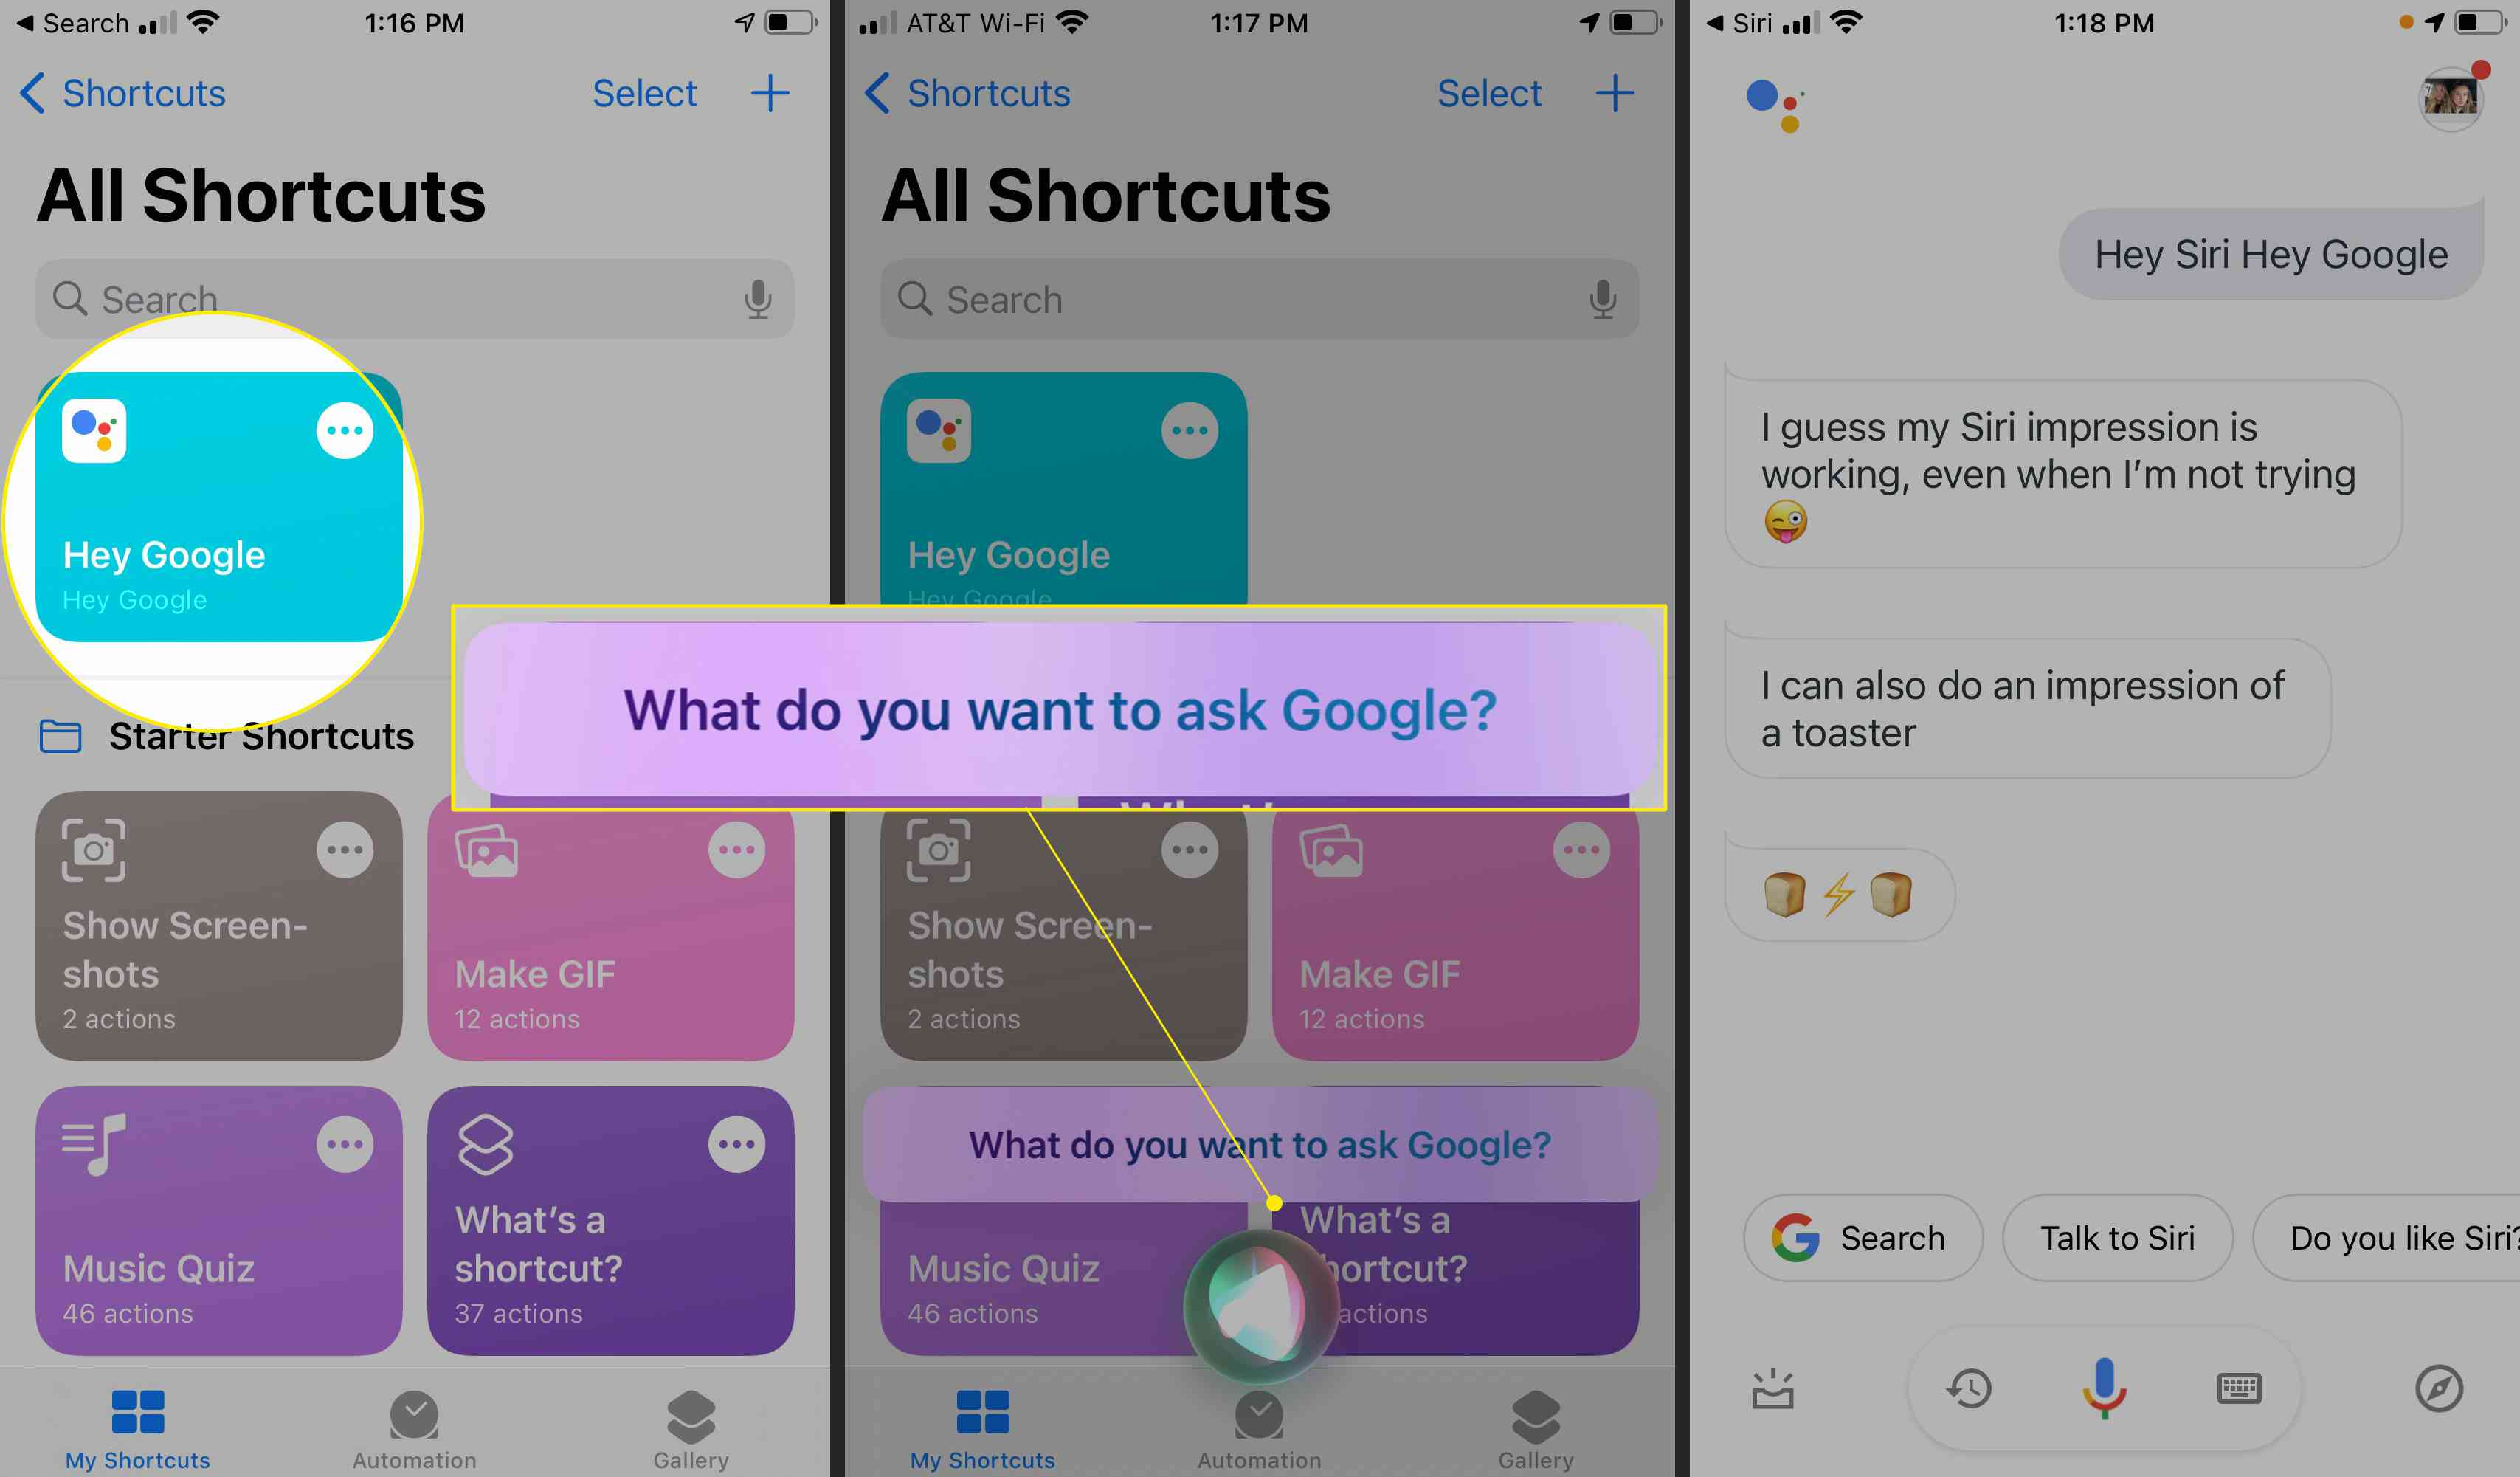 The Shortcut screen with